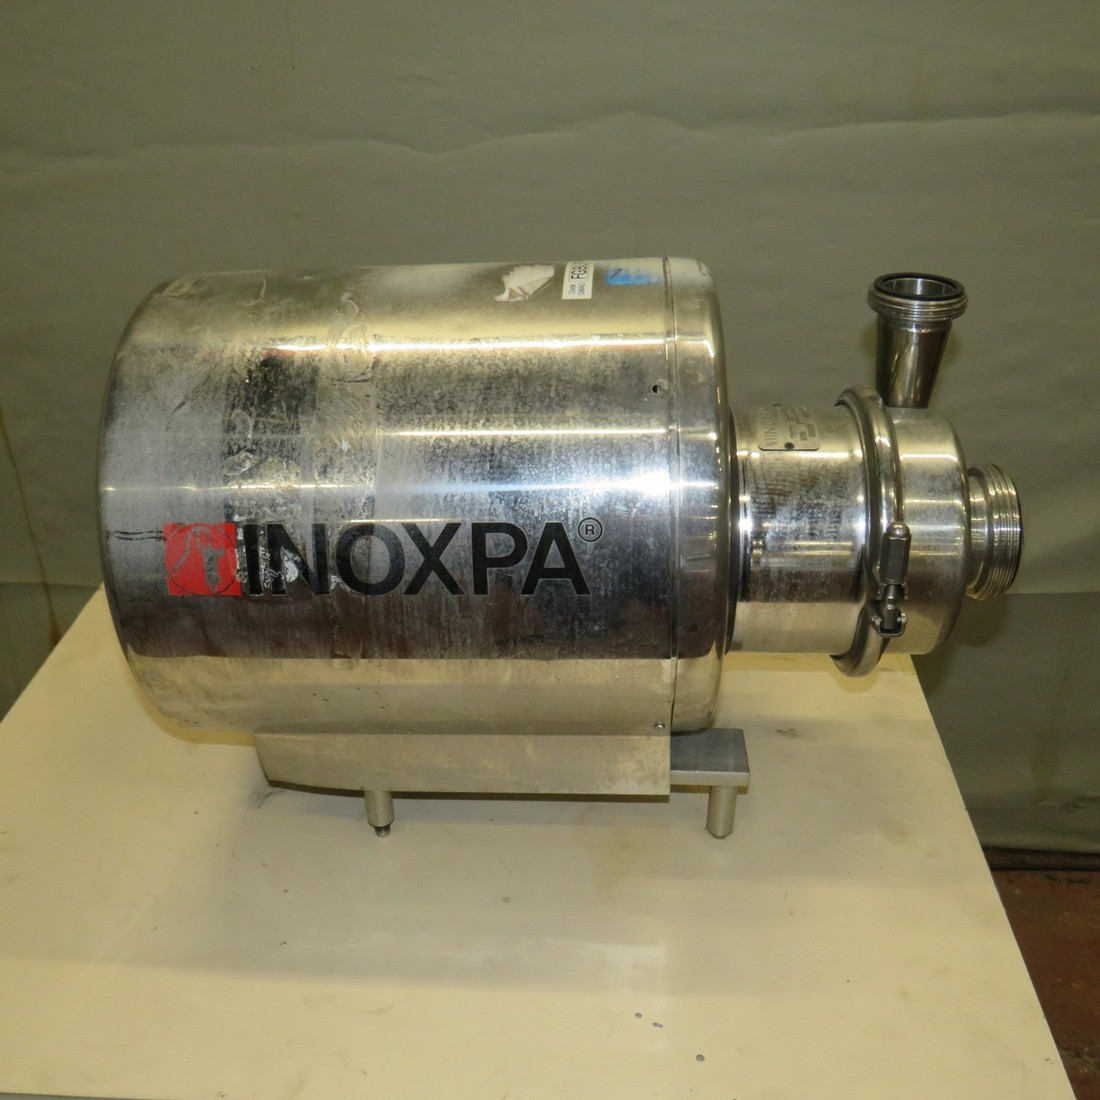 Stainless Steel Inoxpa Centrifugal Pump Se 26e Type